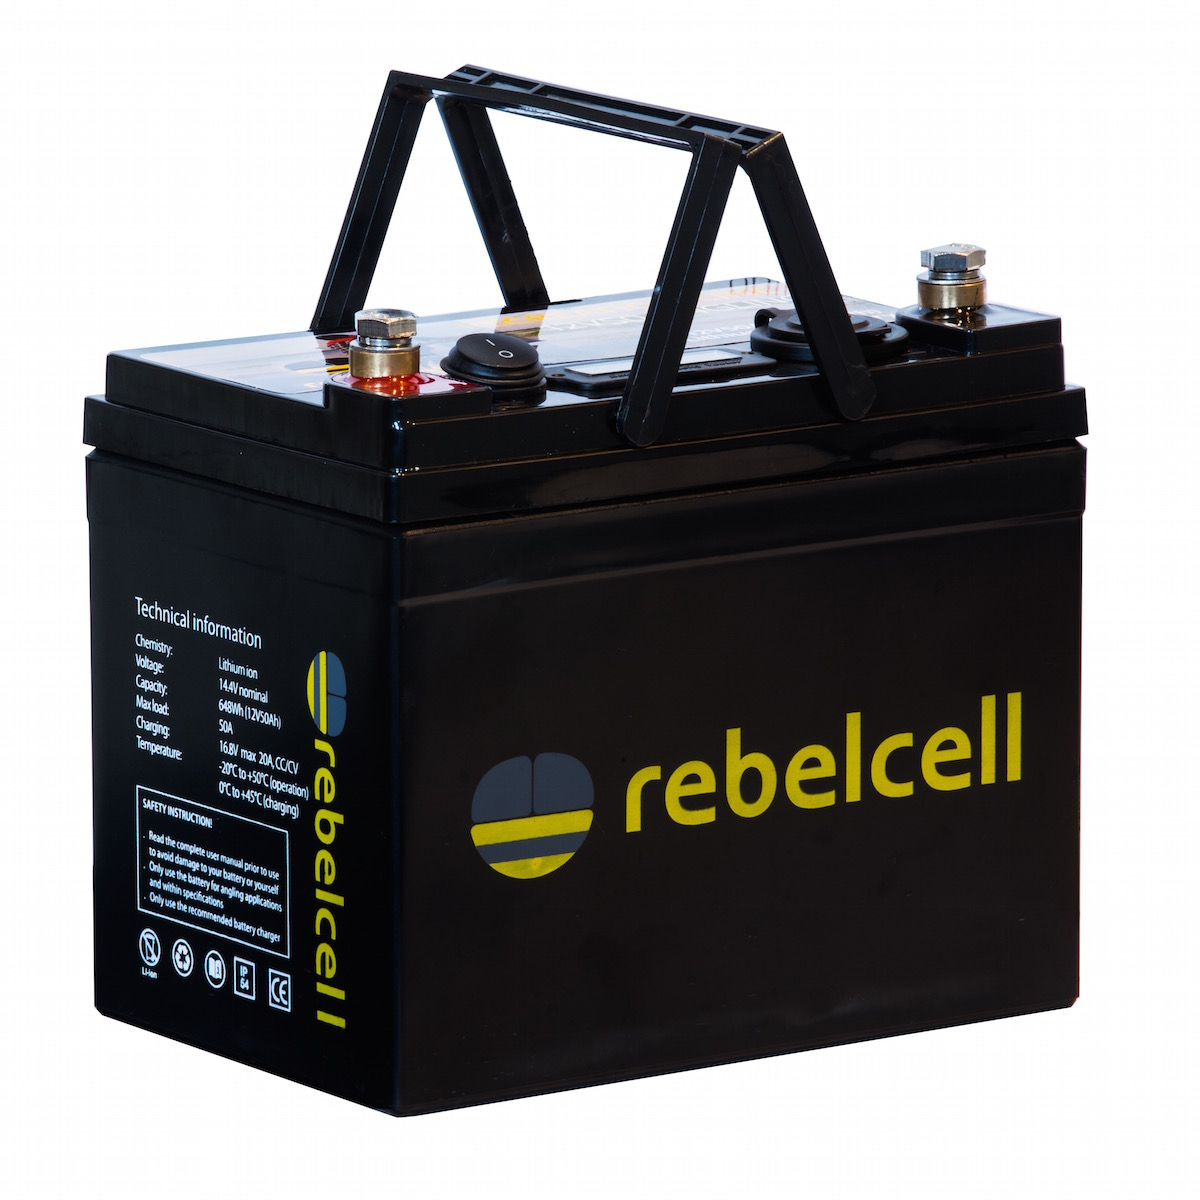 Rebelcell 12V50 Angling li-ion accu